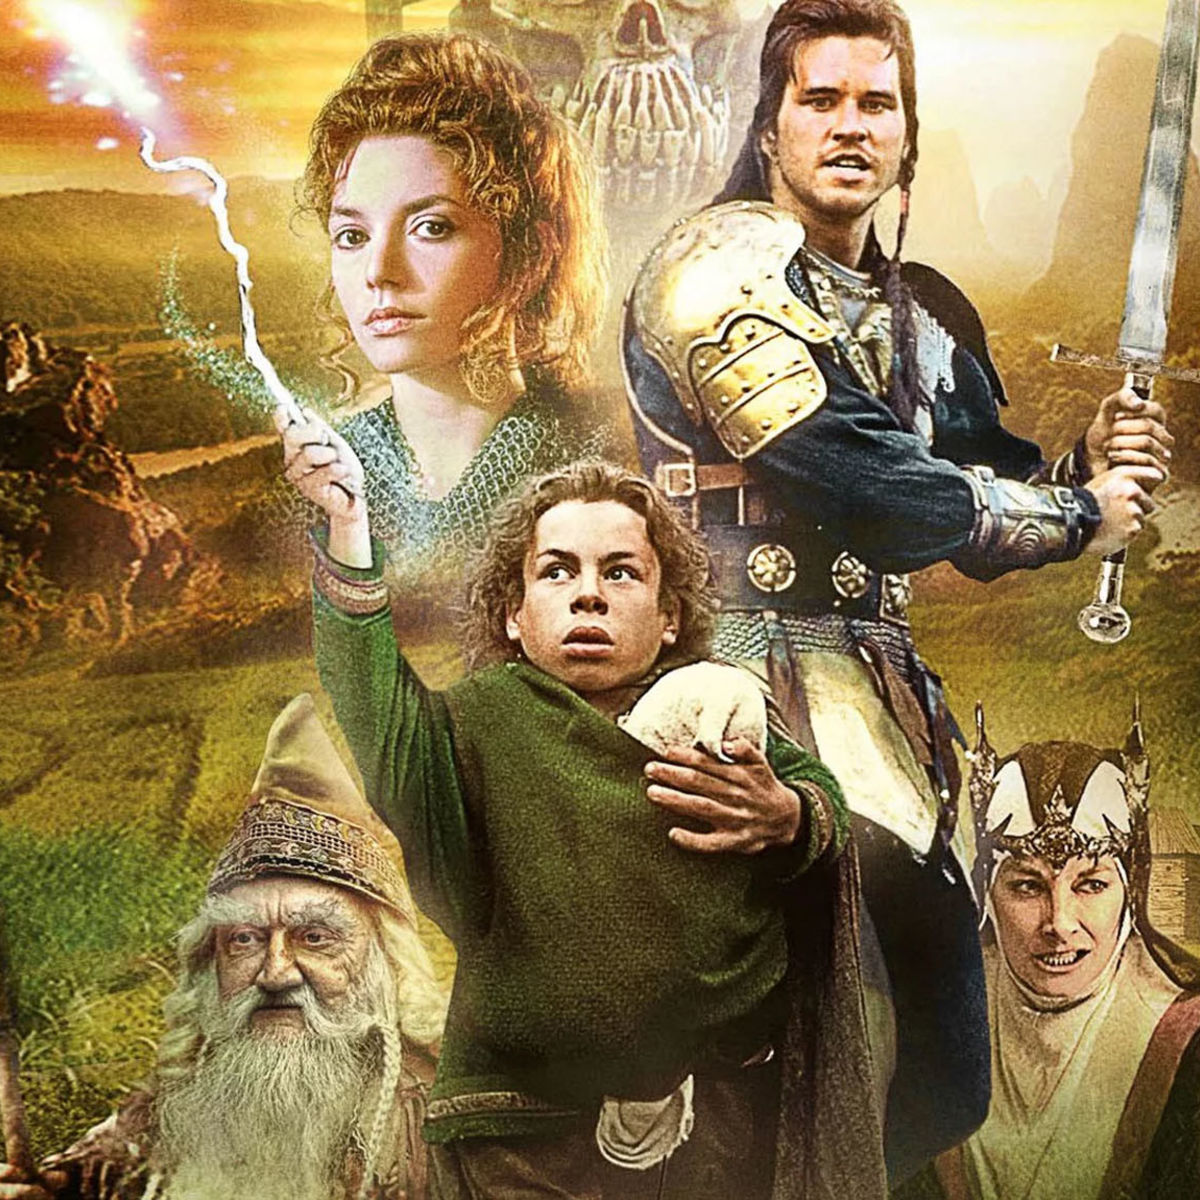 ron howard says he s seriously exploring willow with lucasfilm